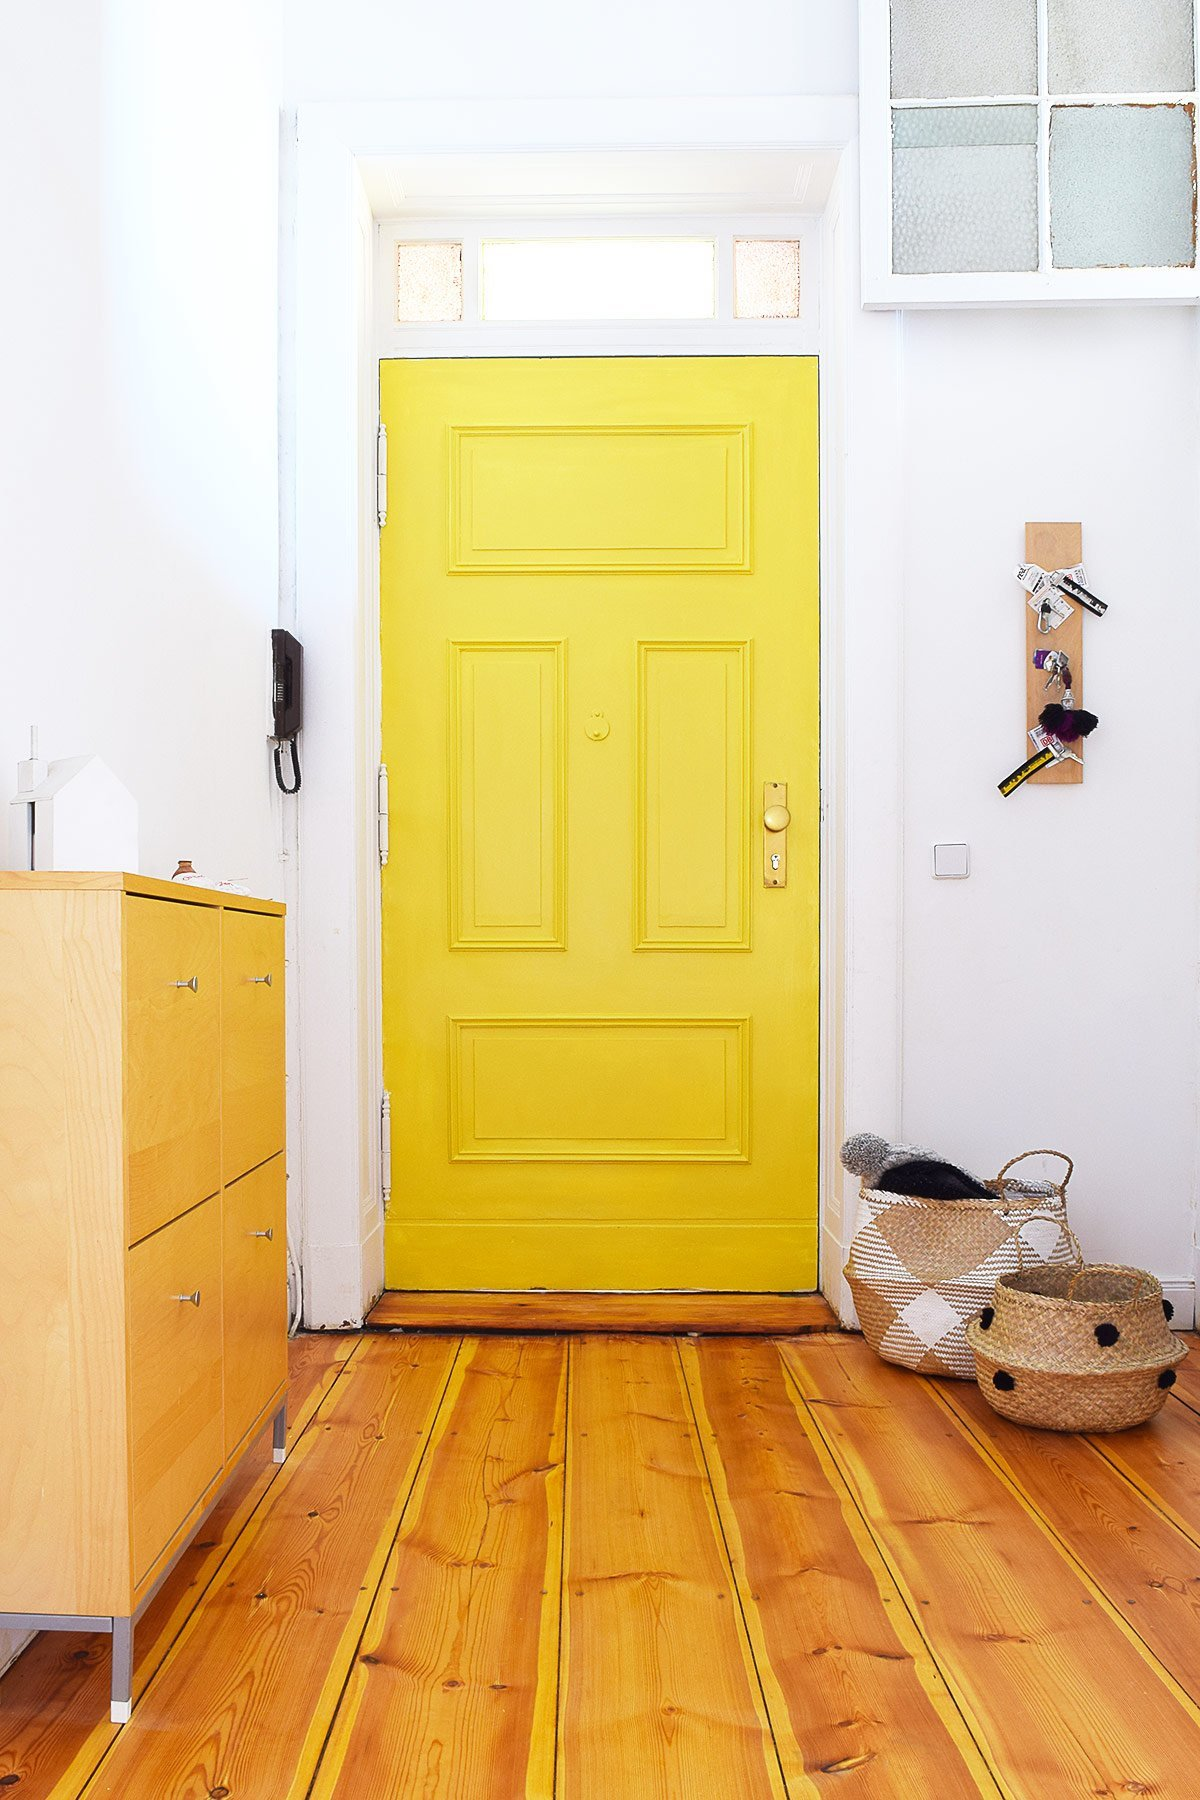 Statement Door - Yellow Front Door with Panelling | Little House On The Corner